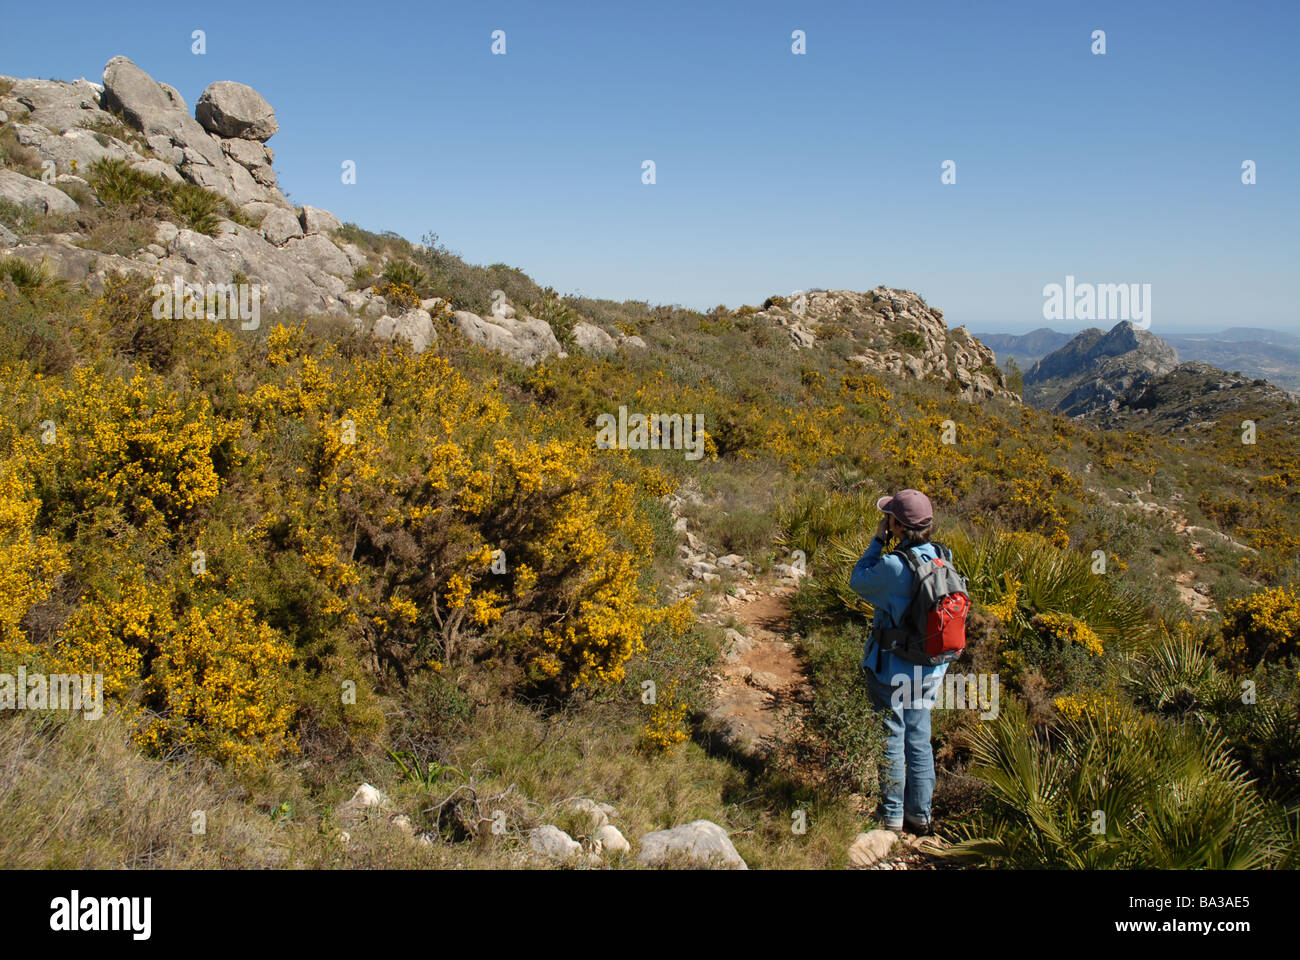 woman hiker on Penya Roig with Cavall Verd in distance, near Benimaurell, Alicante Province, Comunidad Valencia, - Stock Image